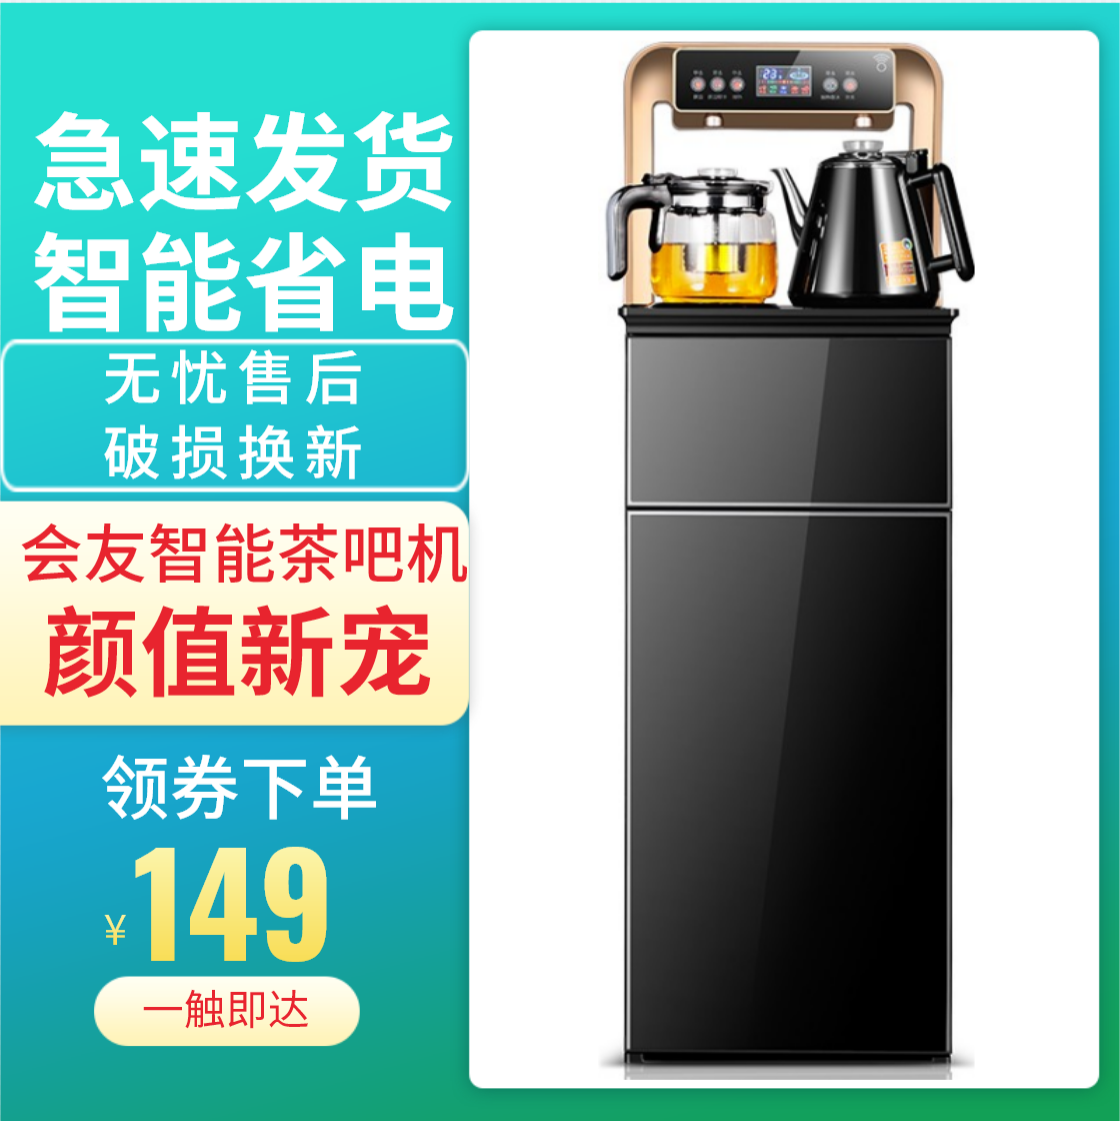 Huiyou drinking machine household vertical lower bucket remote control cold and hot double door storage automatic watering intelligent tea bar machine